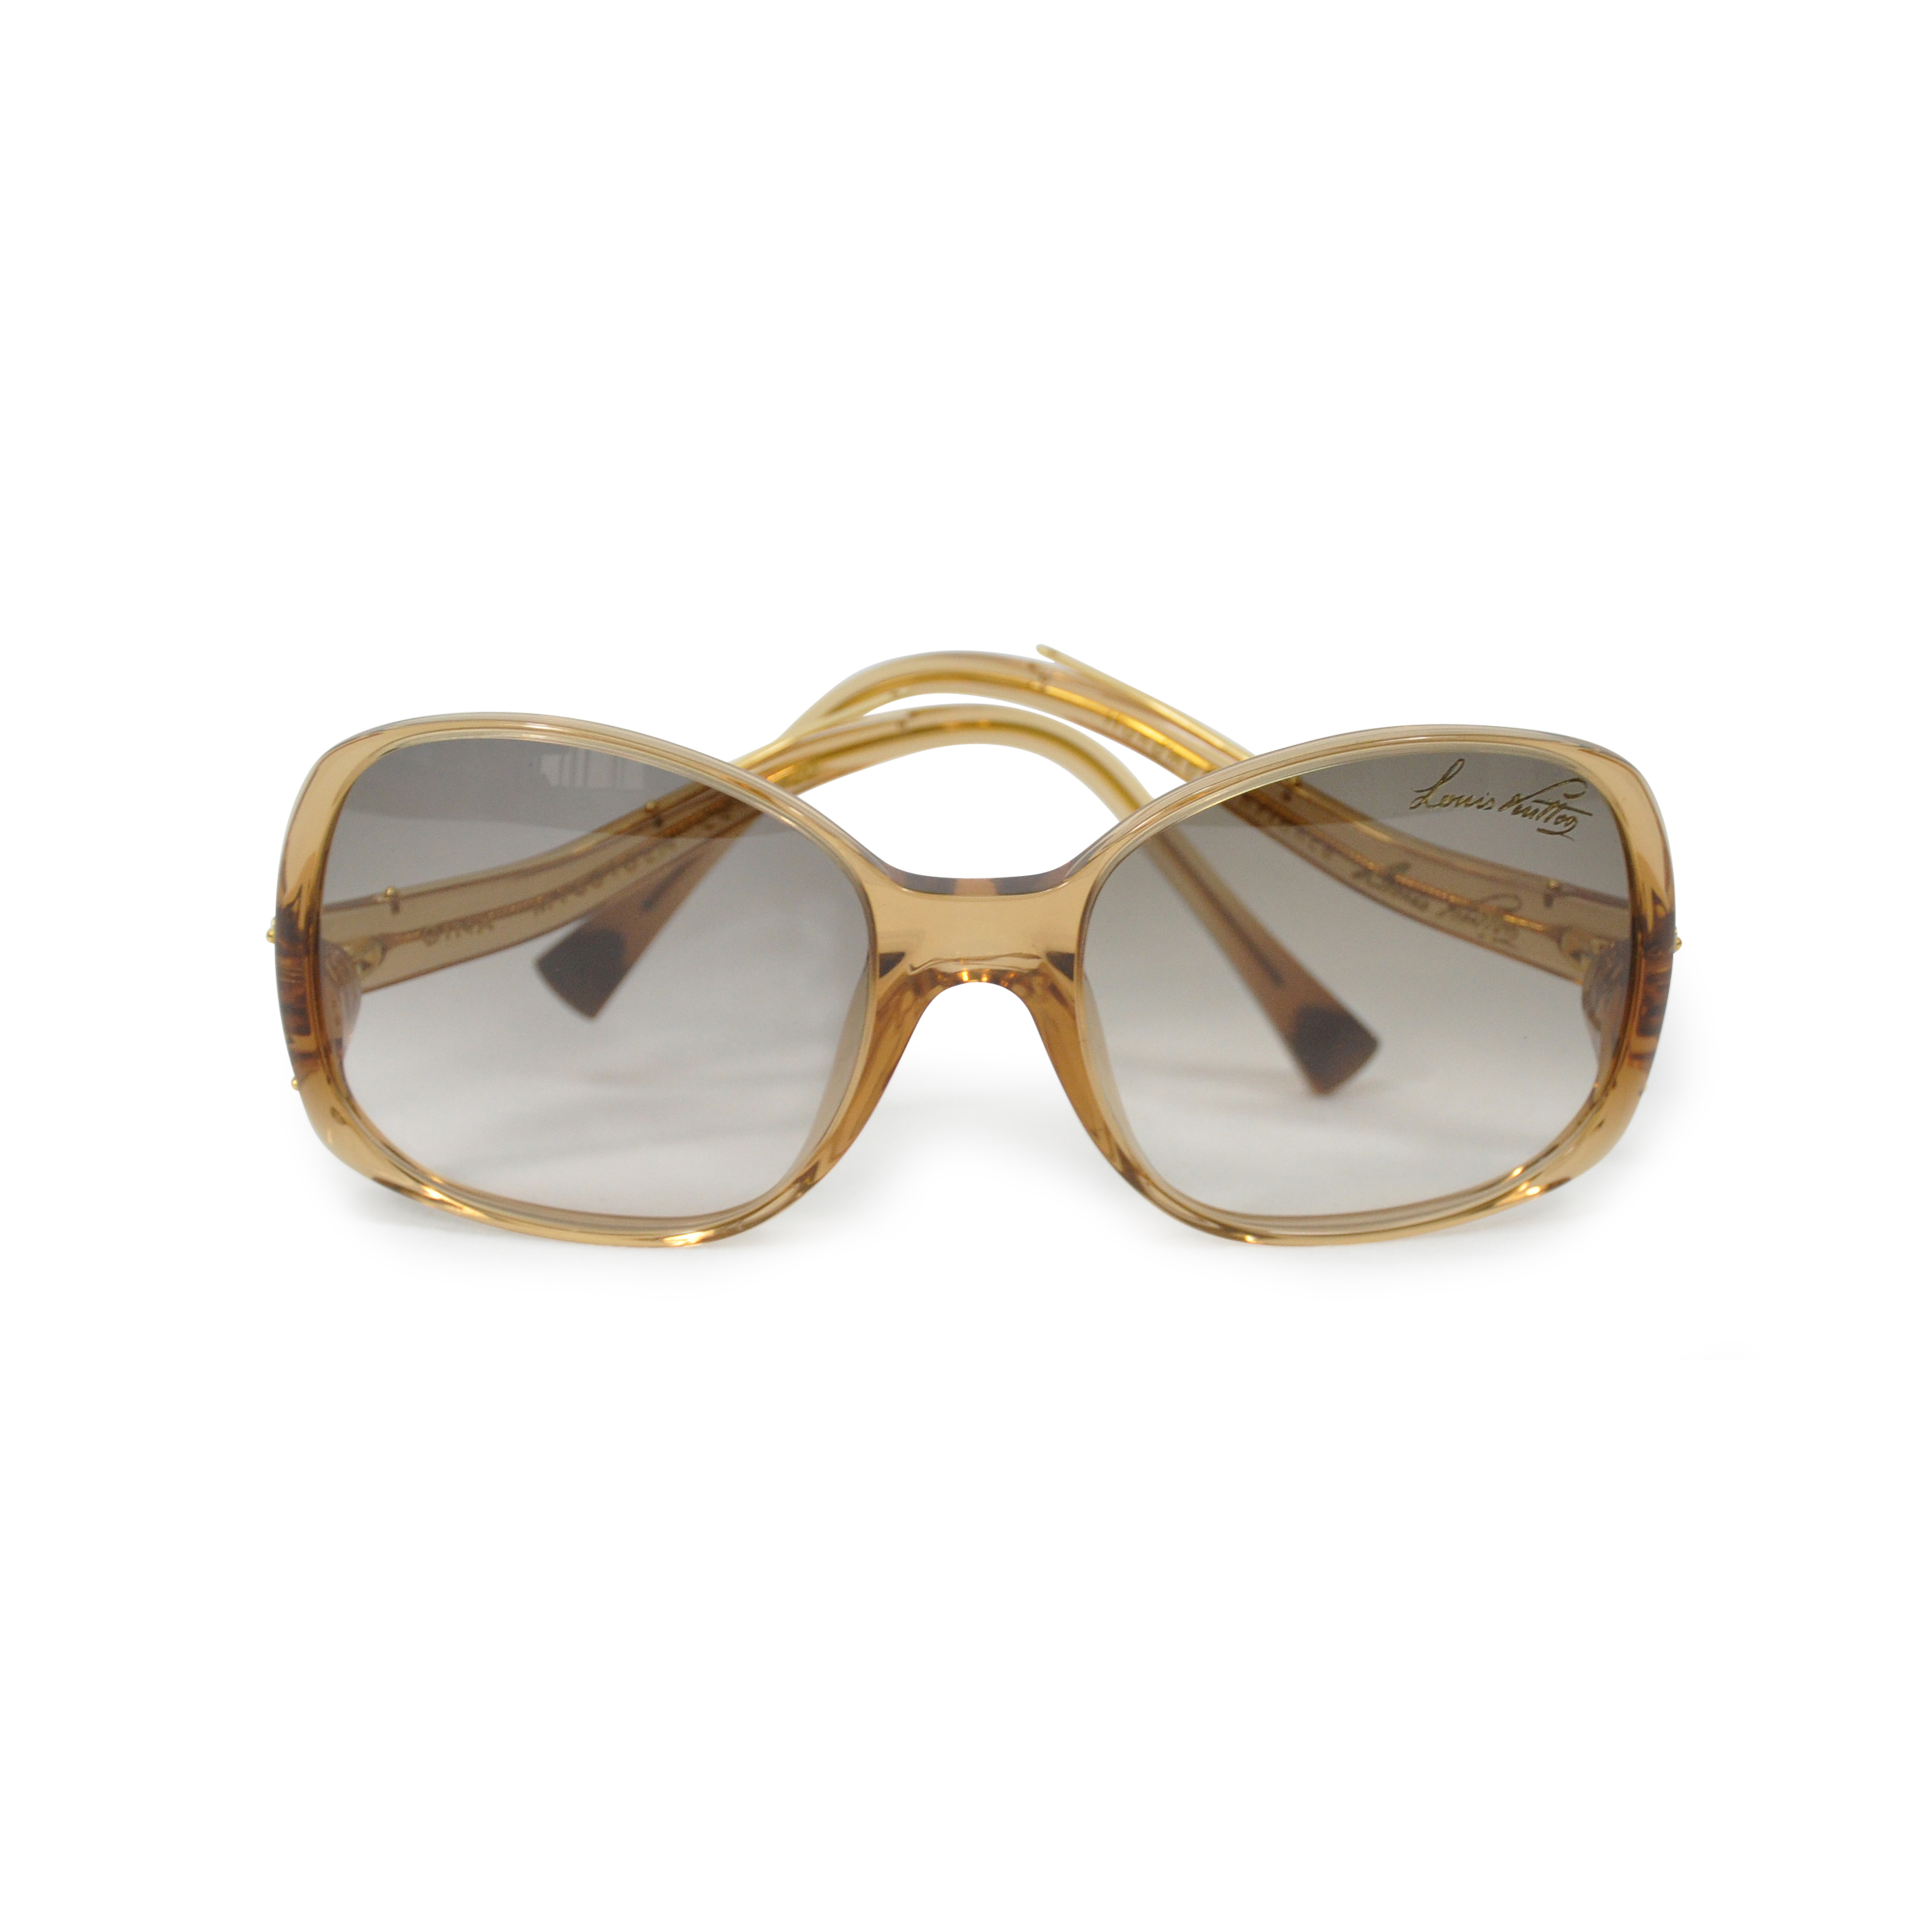 4fa84c87a89 Authentic pre owned louis vuitton oversized glitter louis vuitton glasses  the fifth collection jpg 3798x3798 Louis